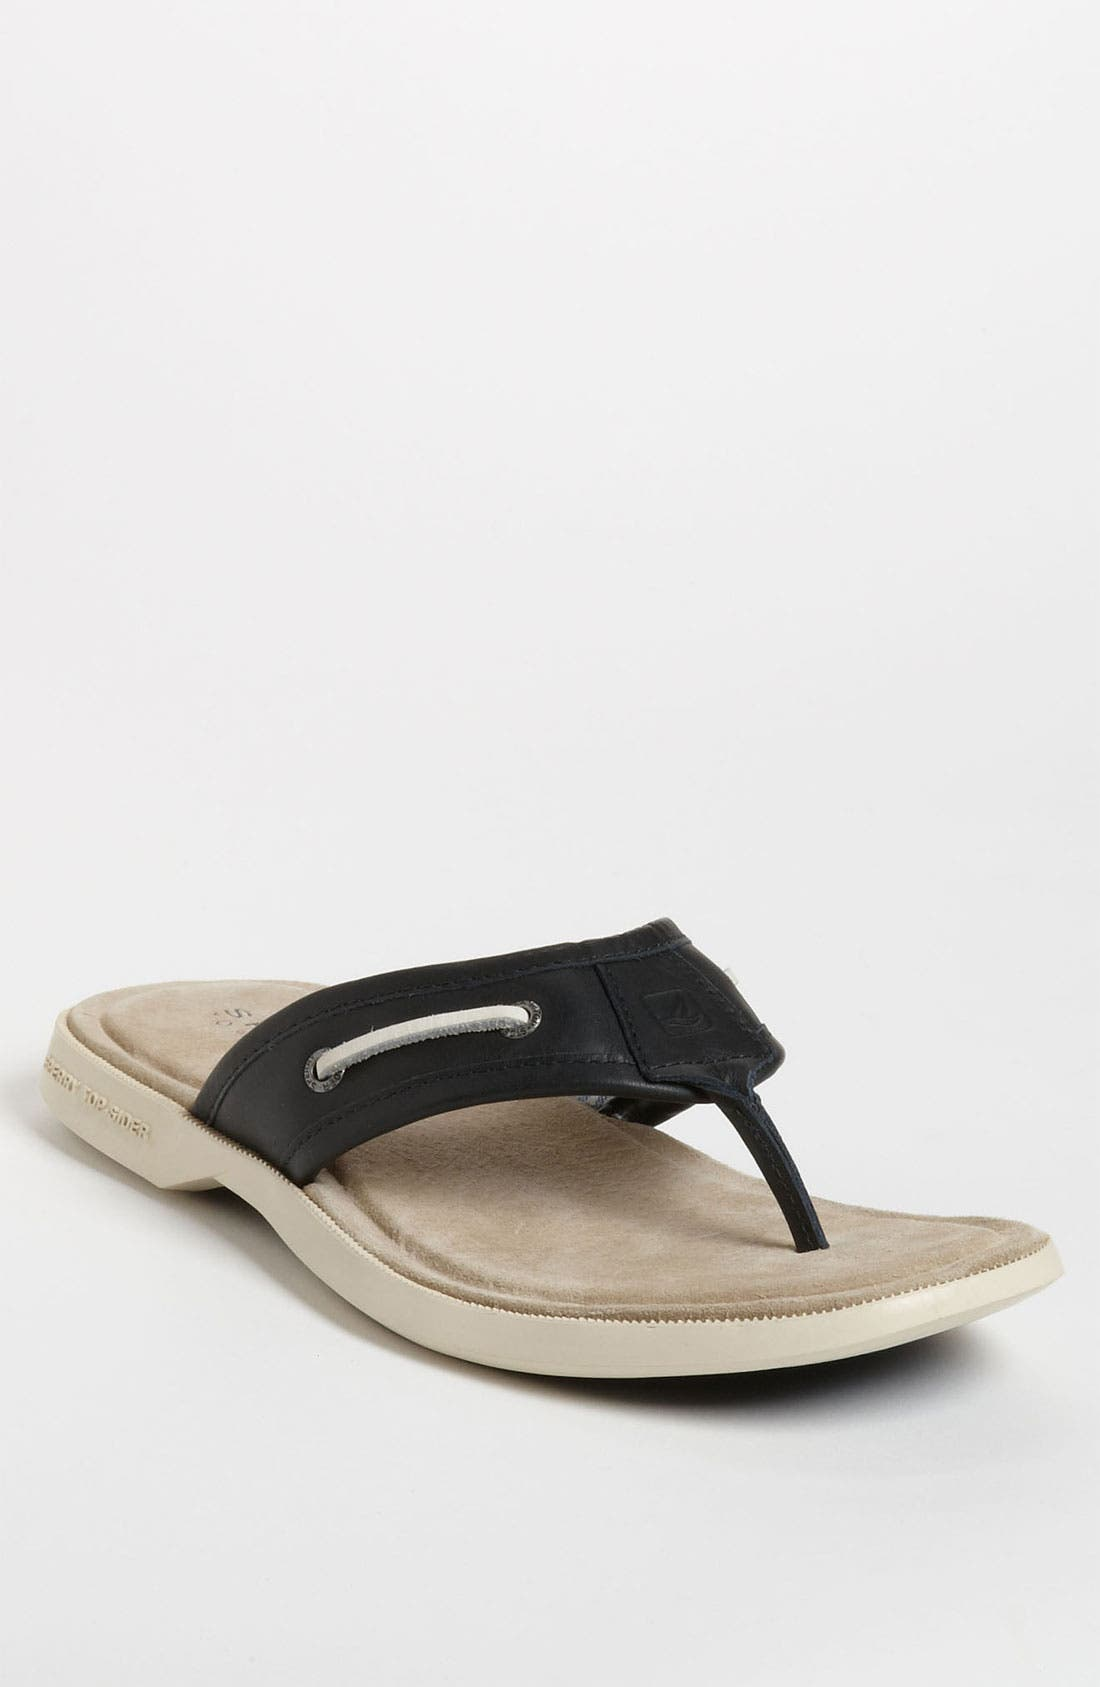 Main Image - Sperry Top-Sider® 'Sahara' Leather Sandal